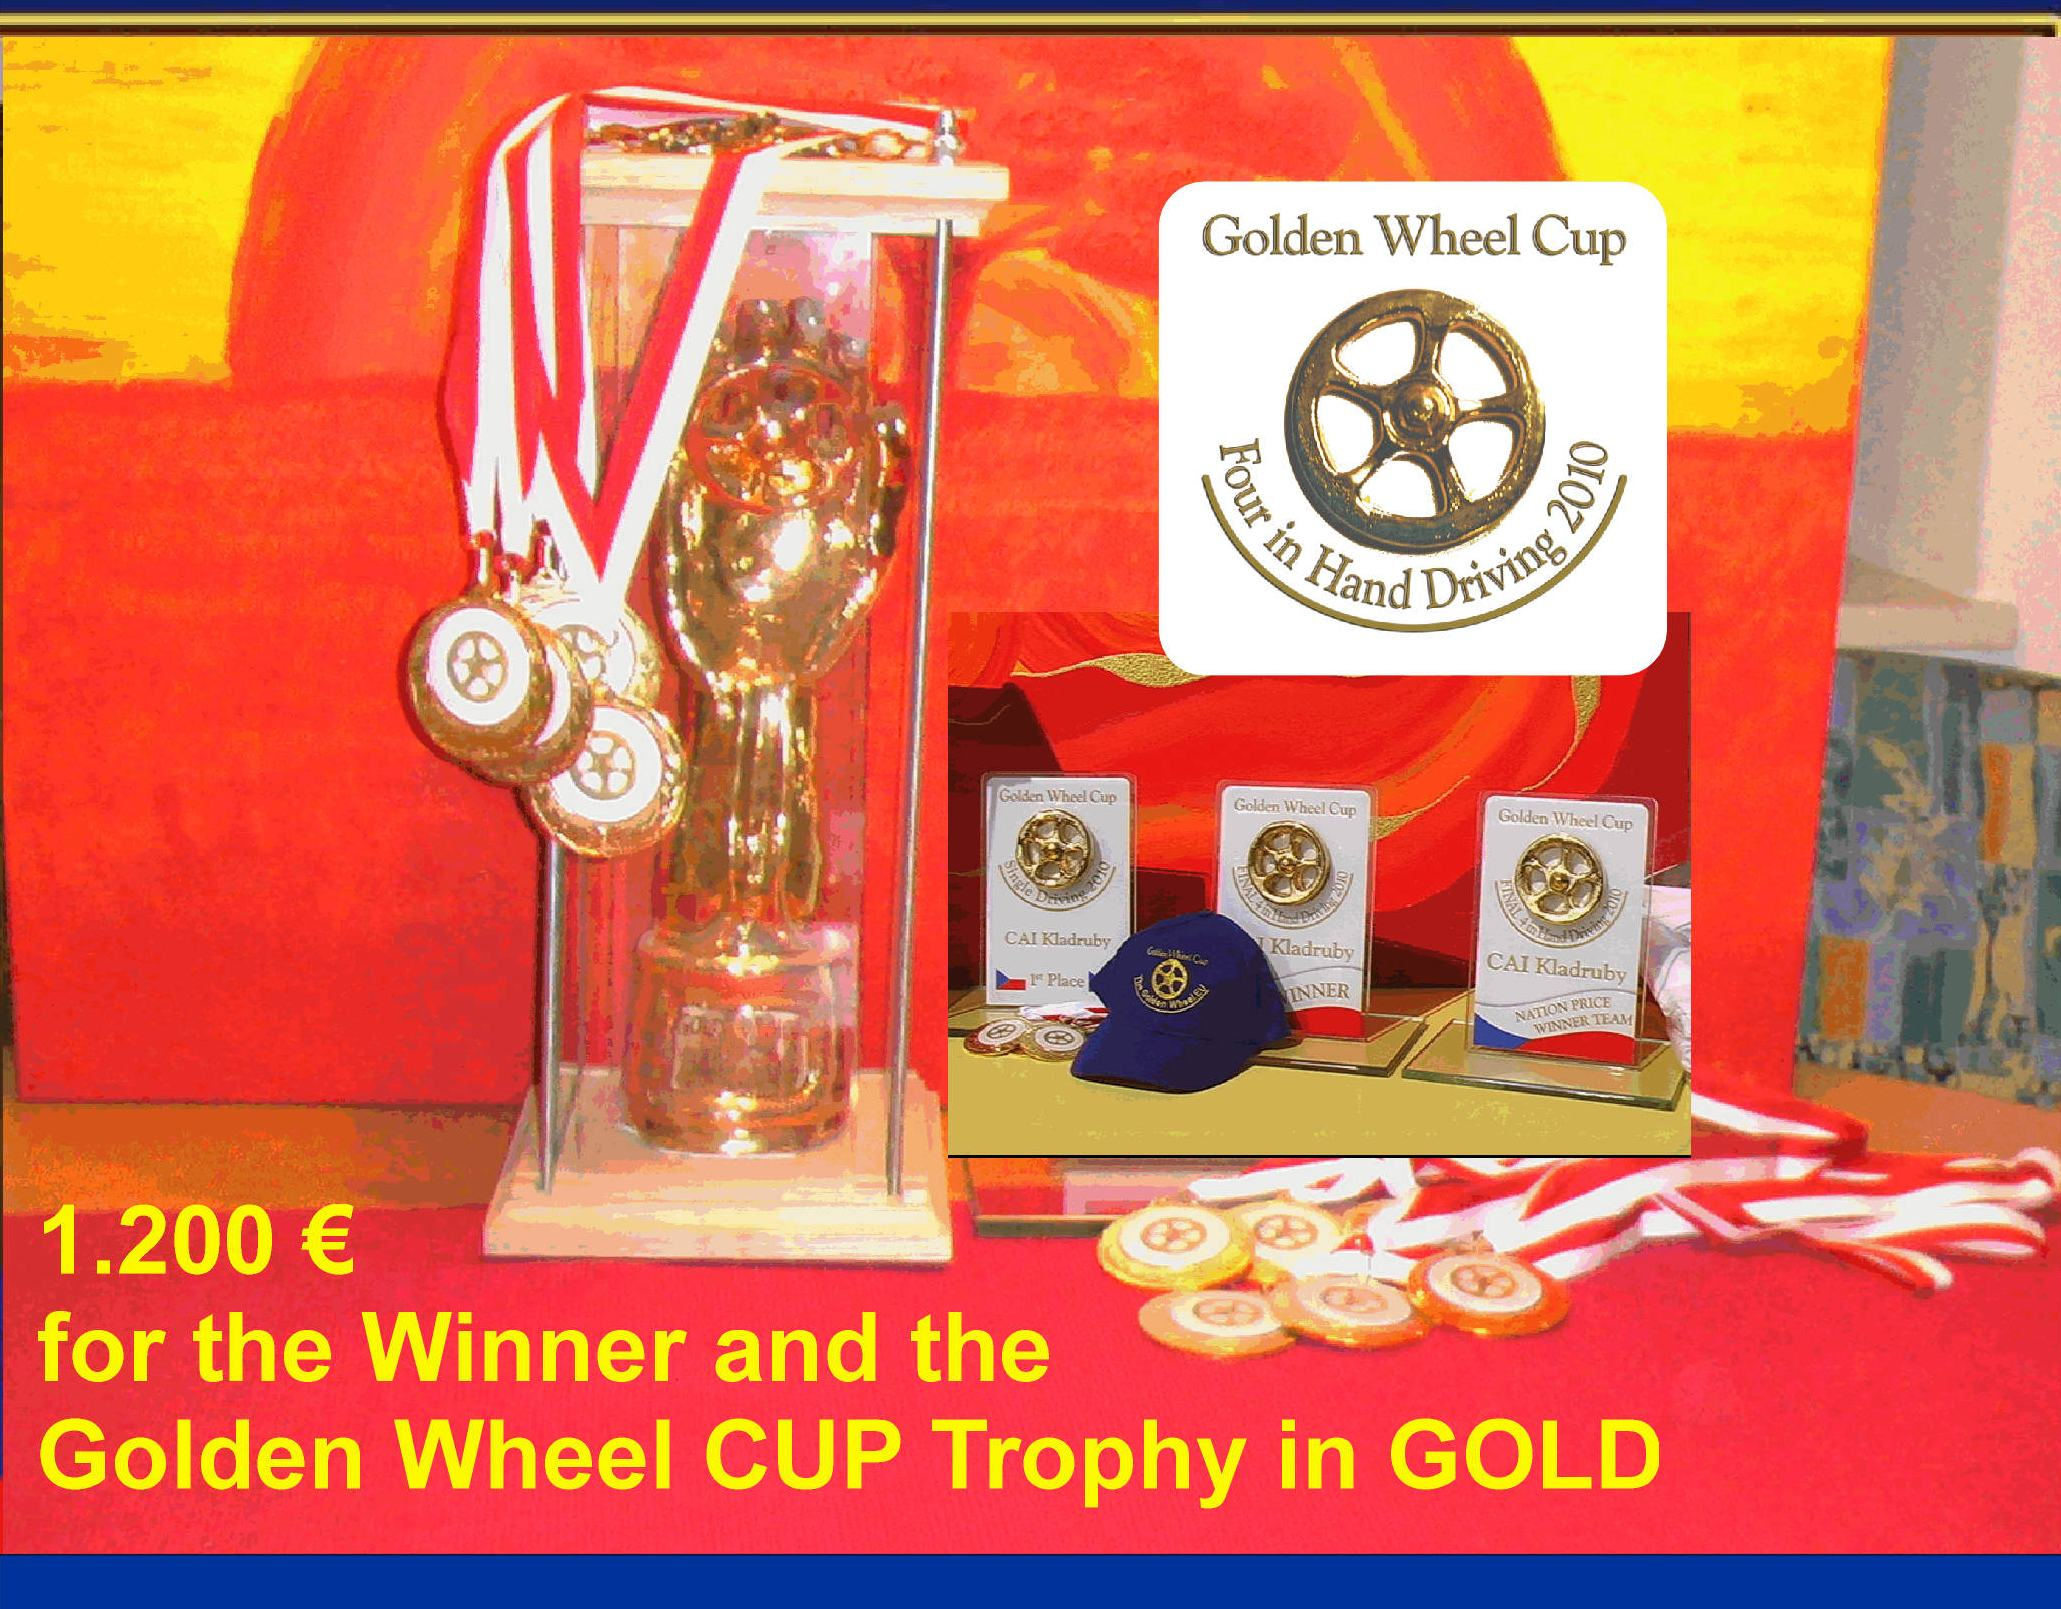 golden_wheel_cup_final__cai-a_kladruby1a.jpg